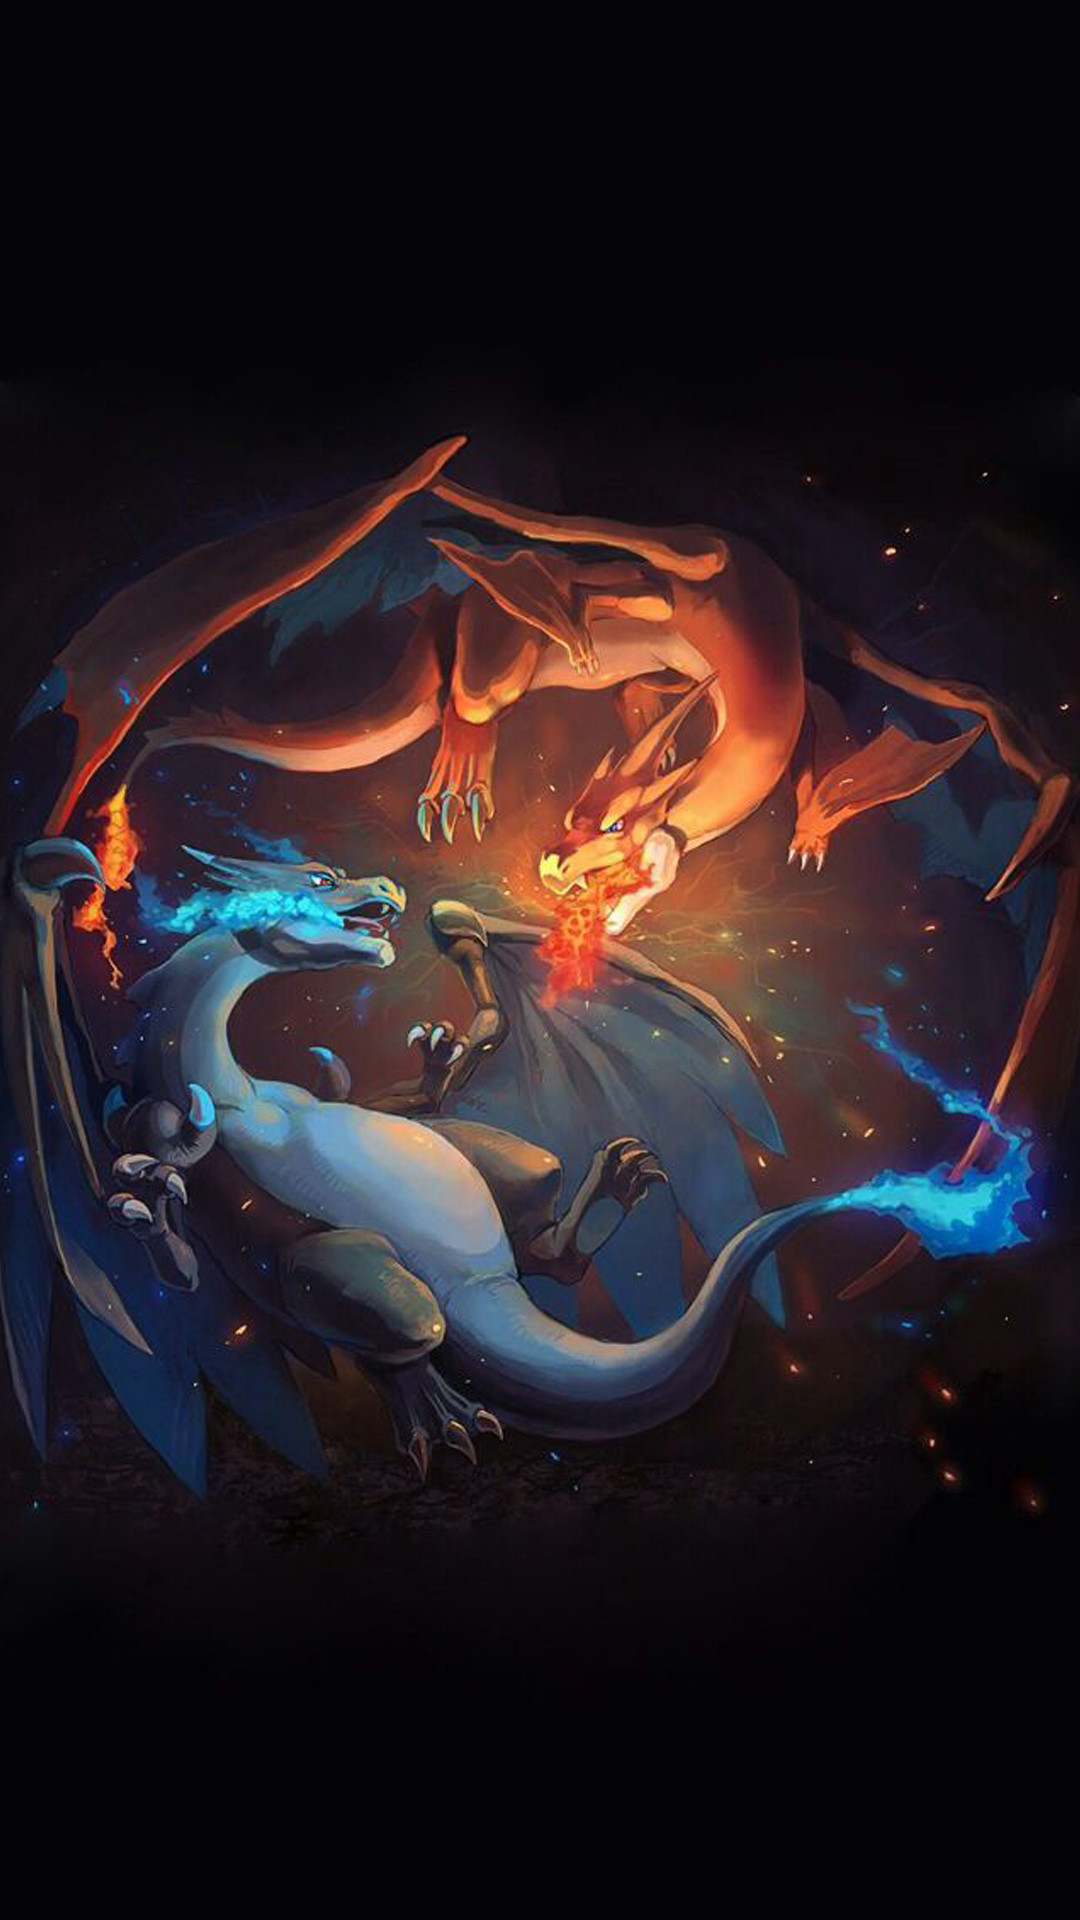 Pokemon Mega Charizard X Wallpaper (80+ images)